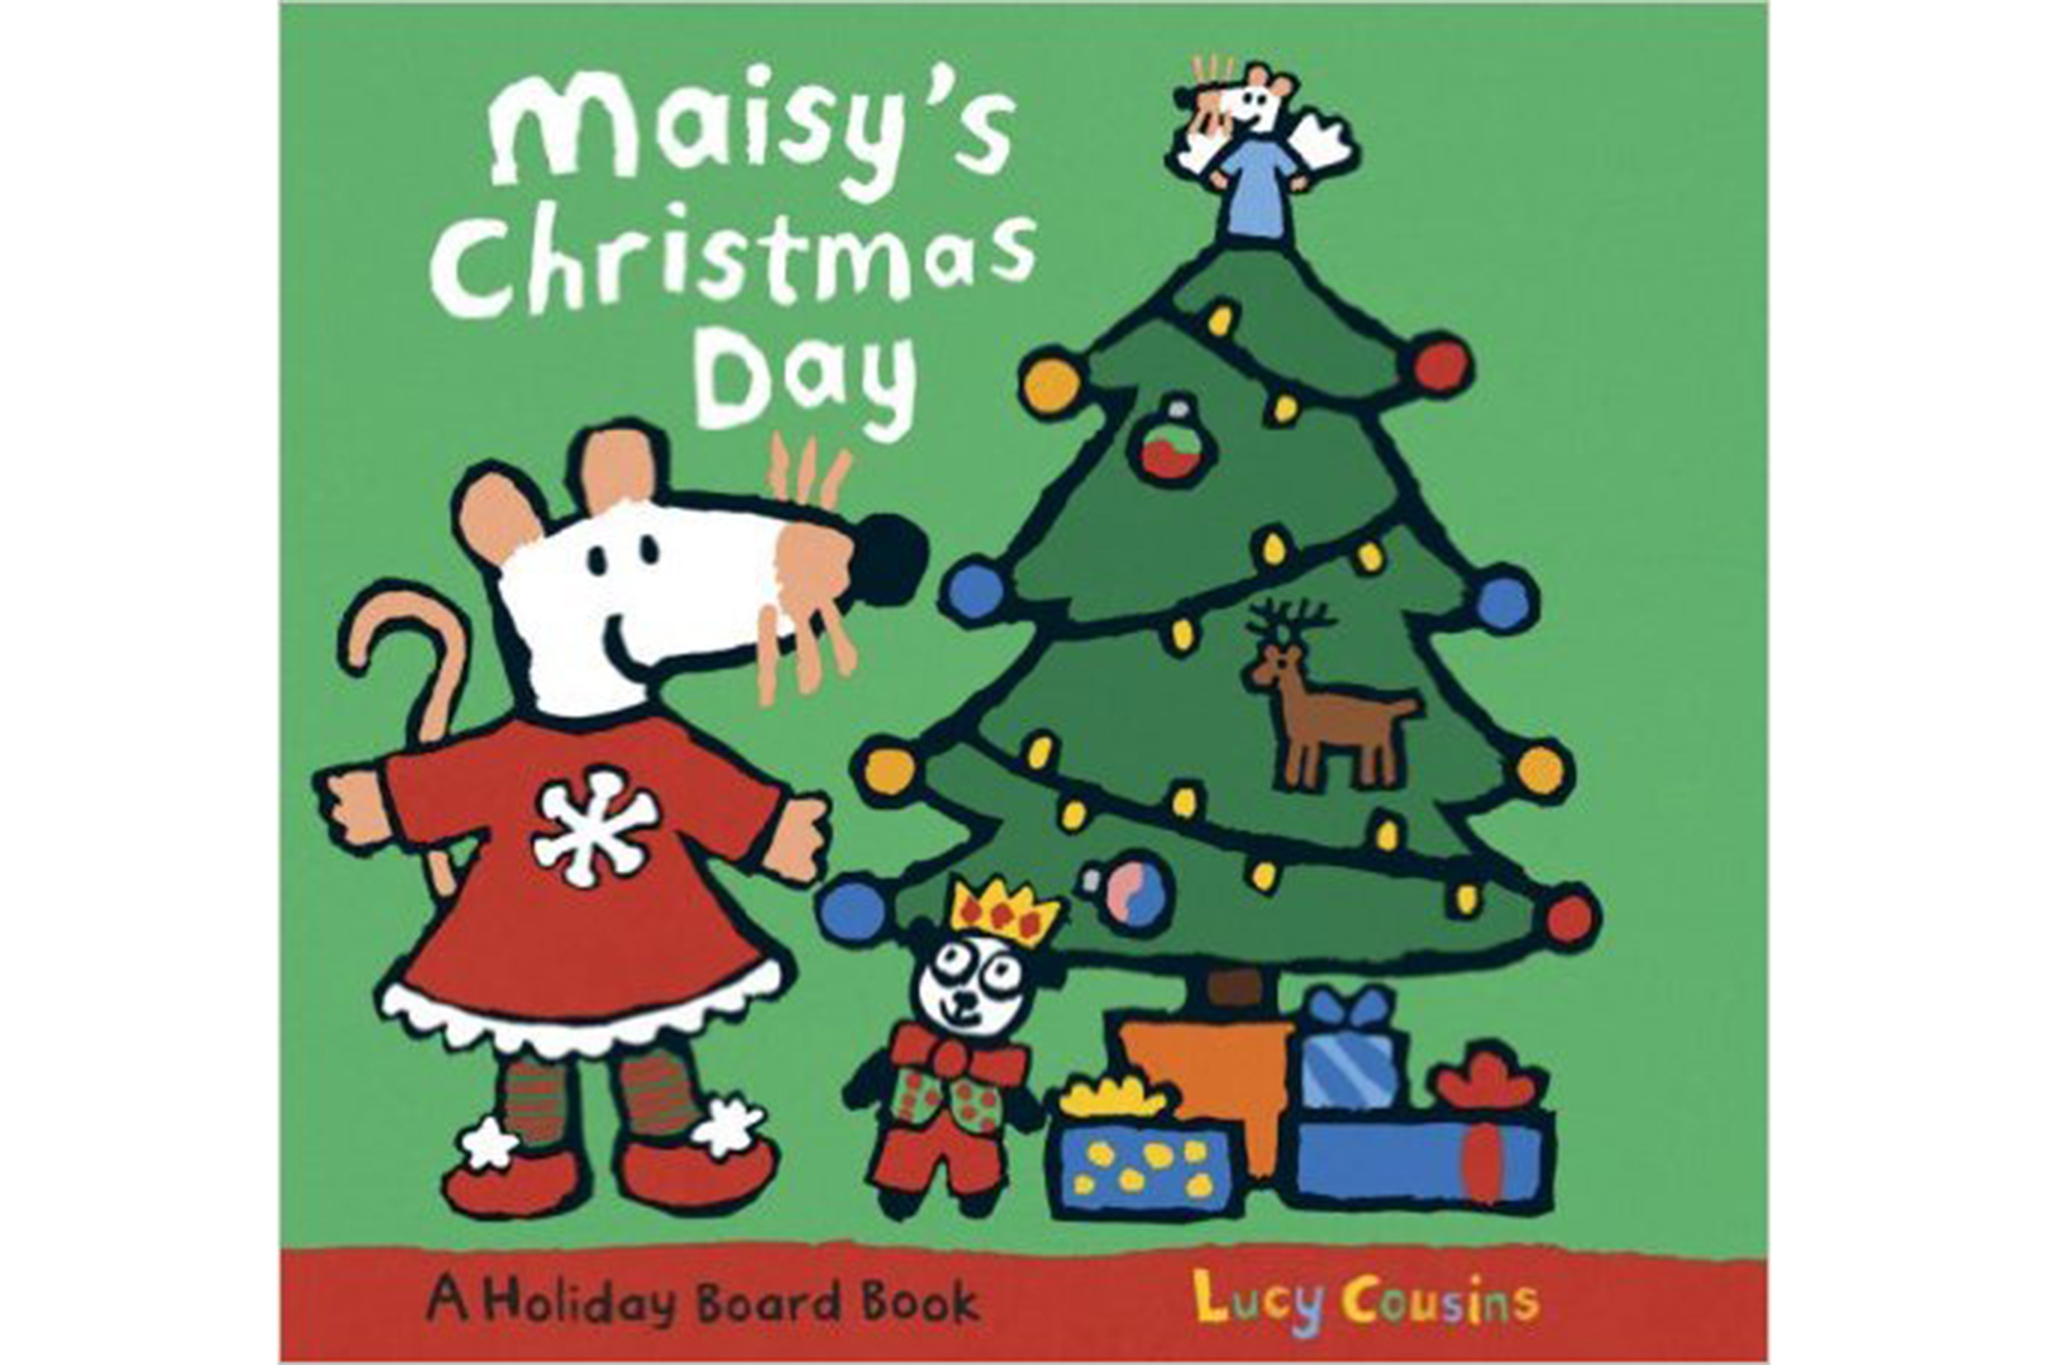 maisys christmas day by lucy cousins - Christmas Story For Toddlers